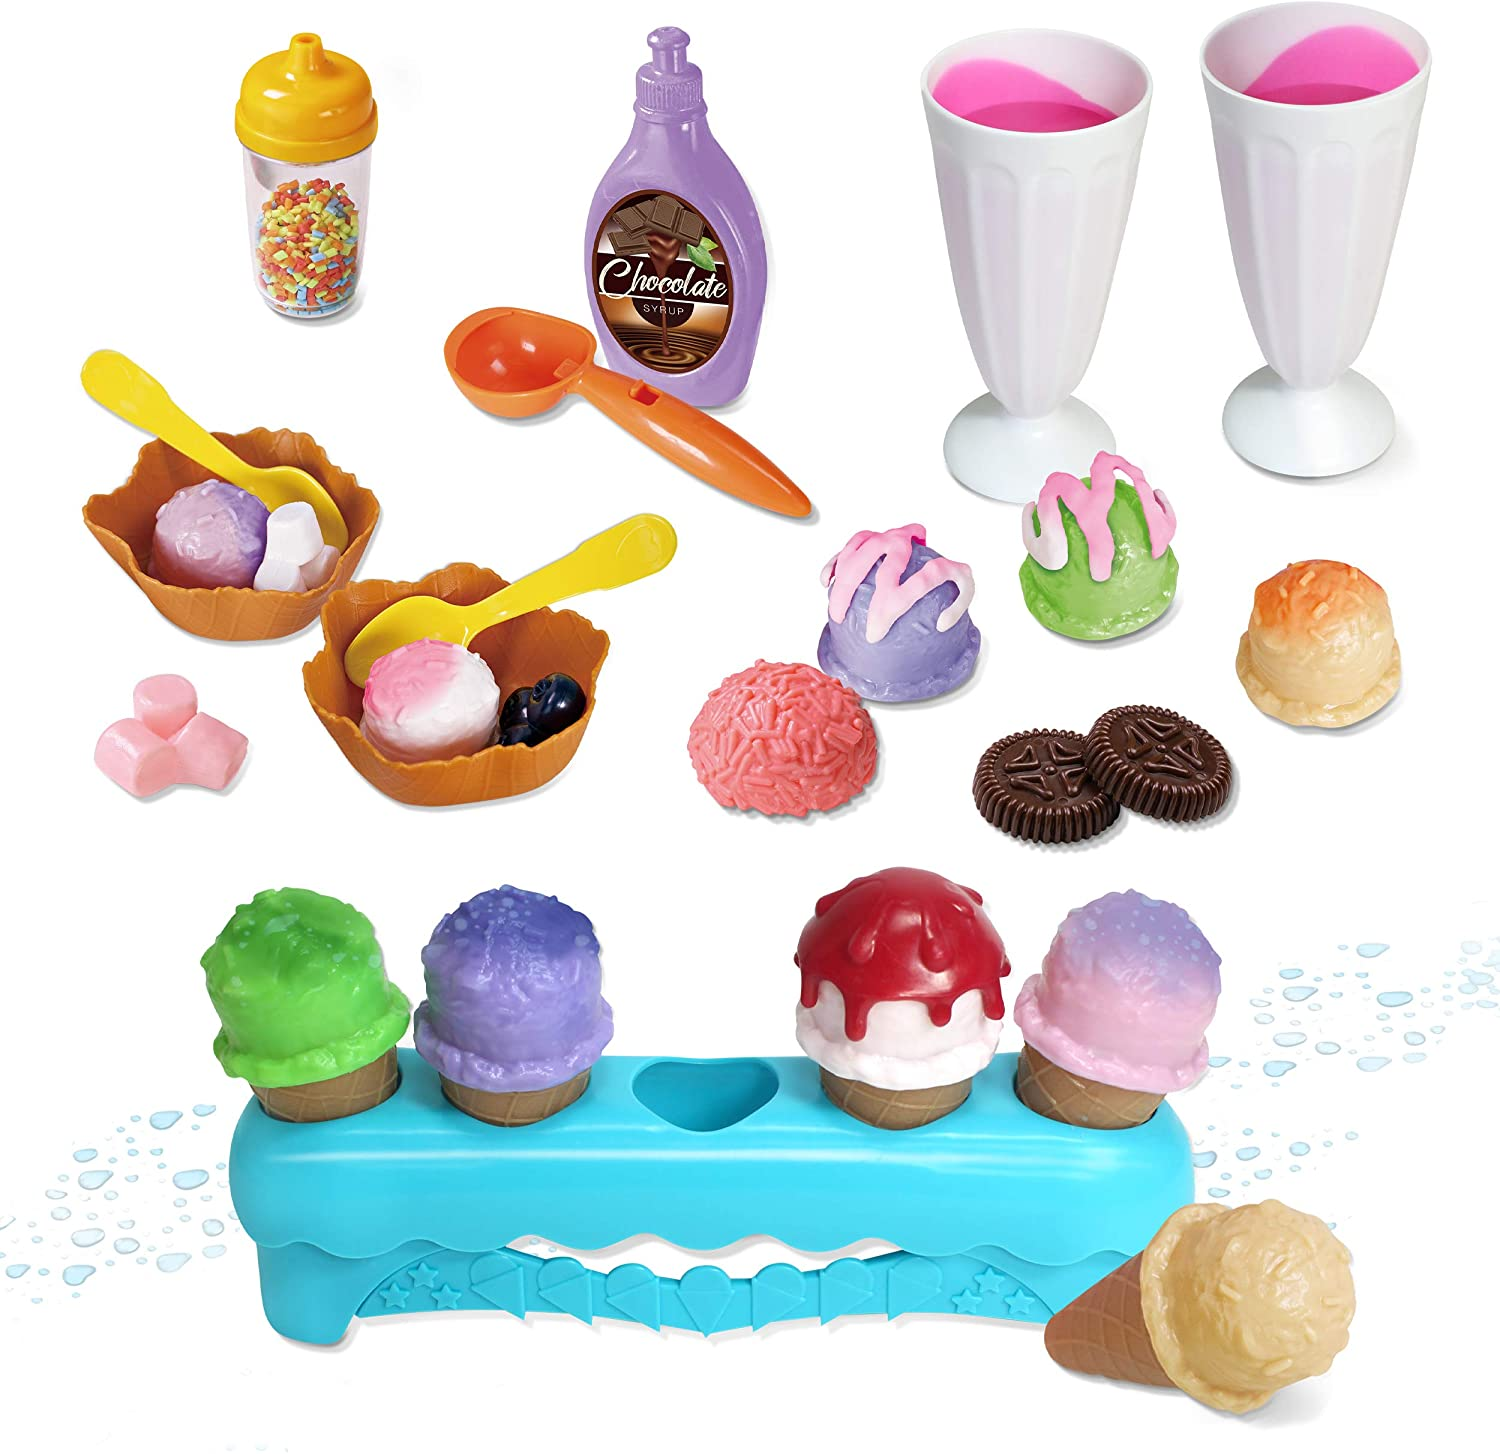 gifts-for-4-year-old-girls-ice-cream-playset